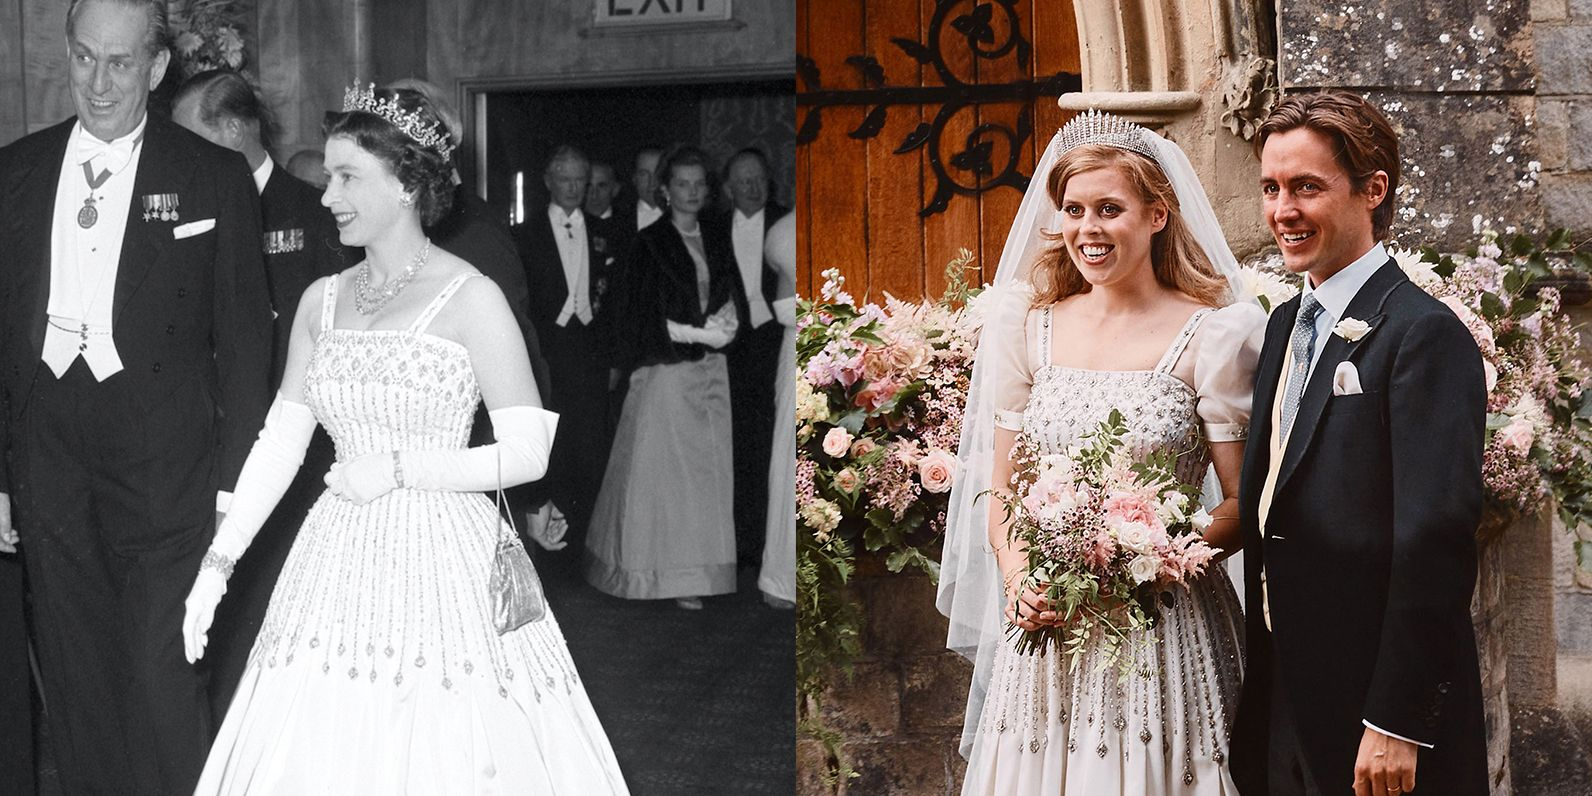 Princess Beatrice S Wedding Dress Details Queen S Vintage Gown